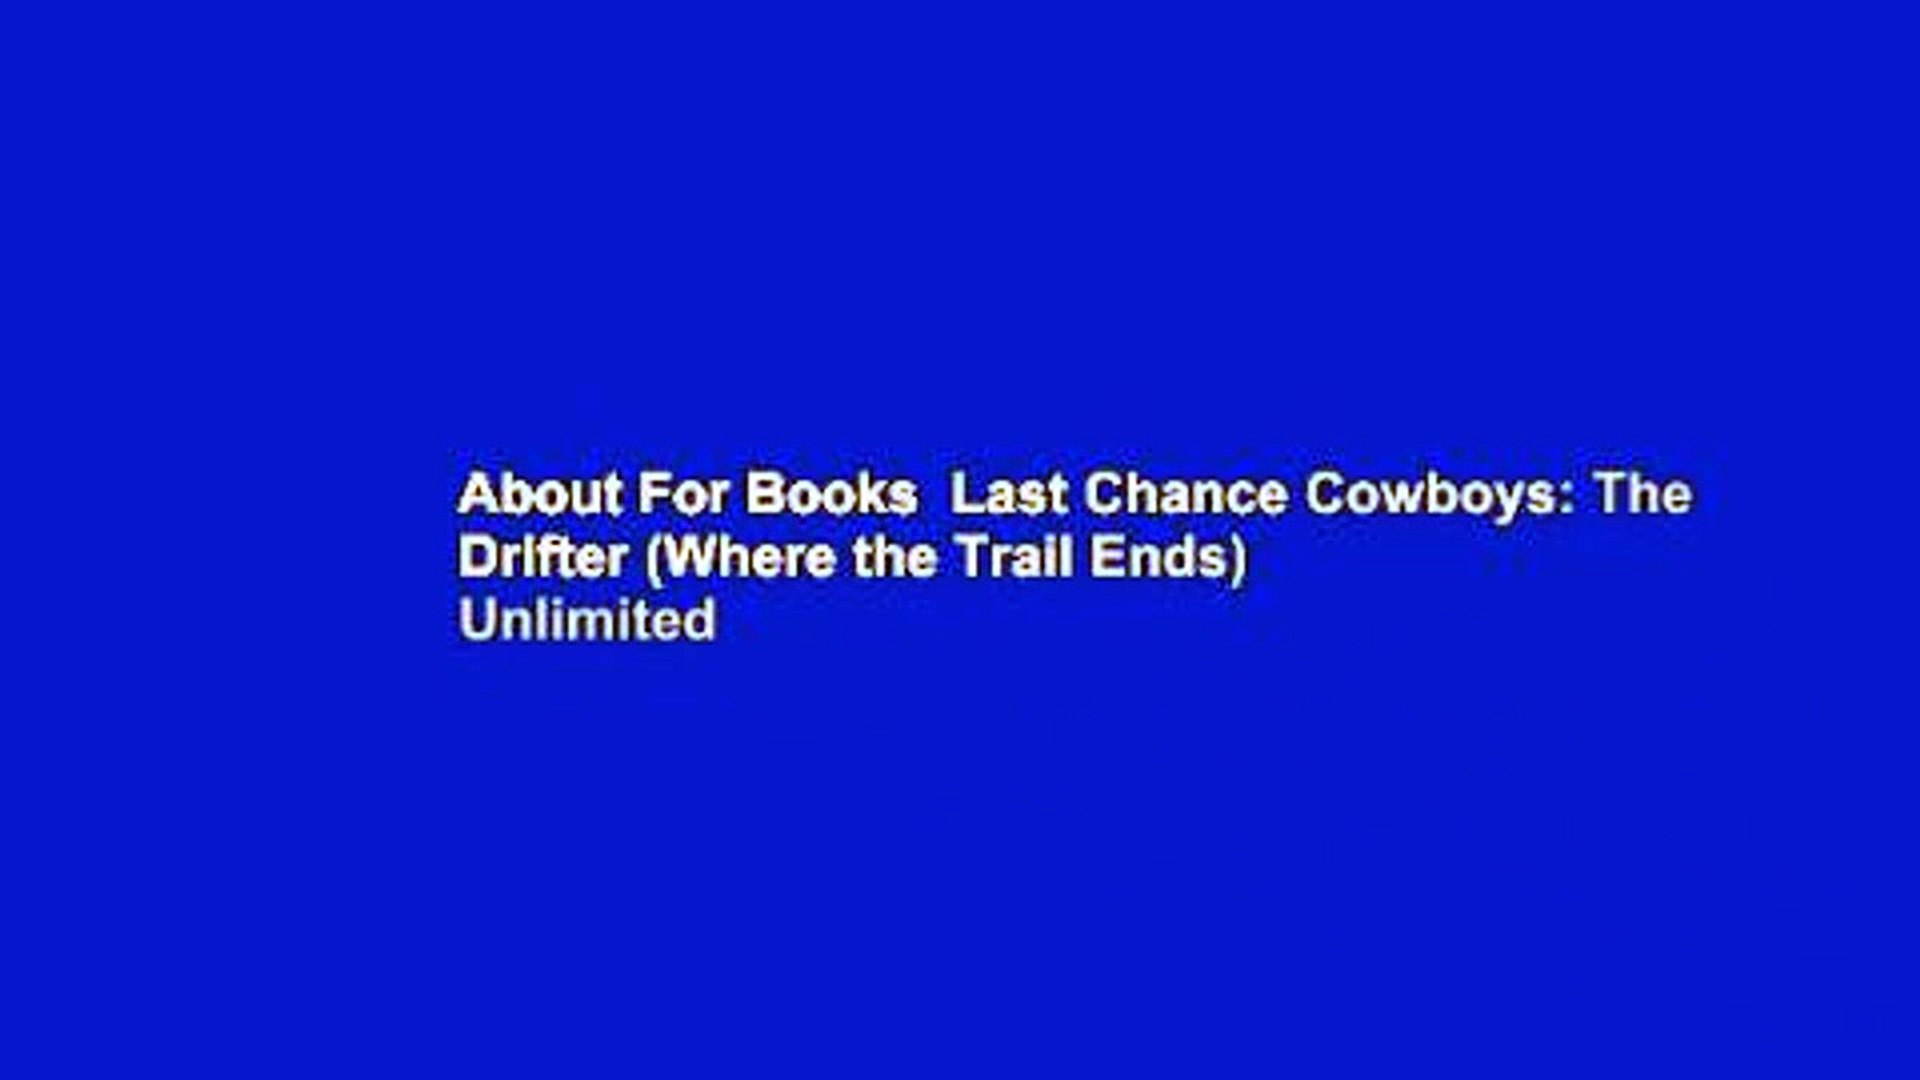 About For Books  Last Chance Cowboys: The Drifter (Where the Trail Ends)  Unlimited